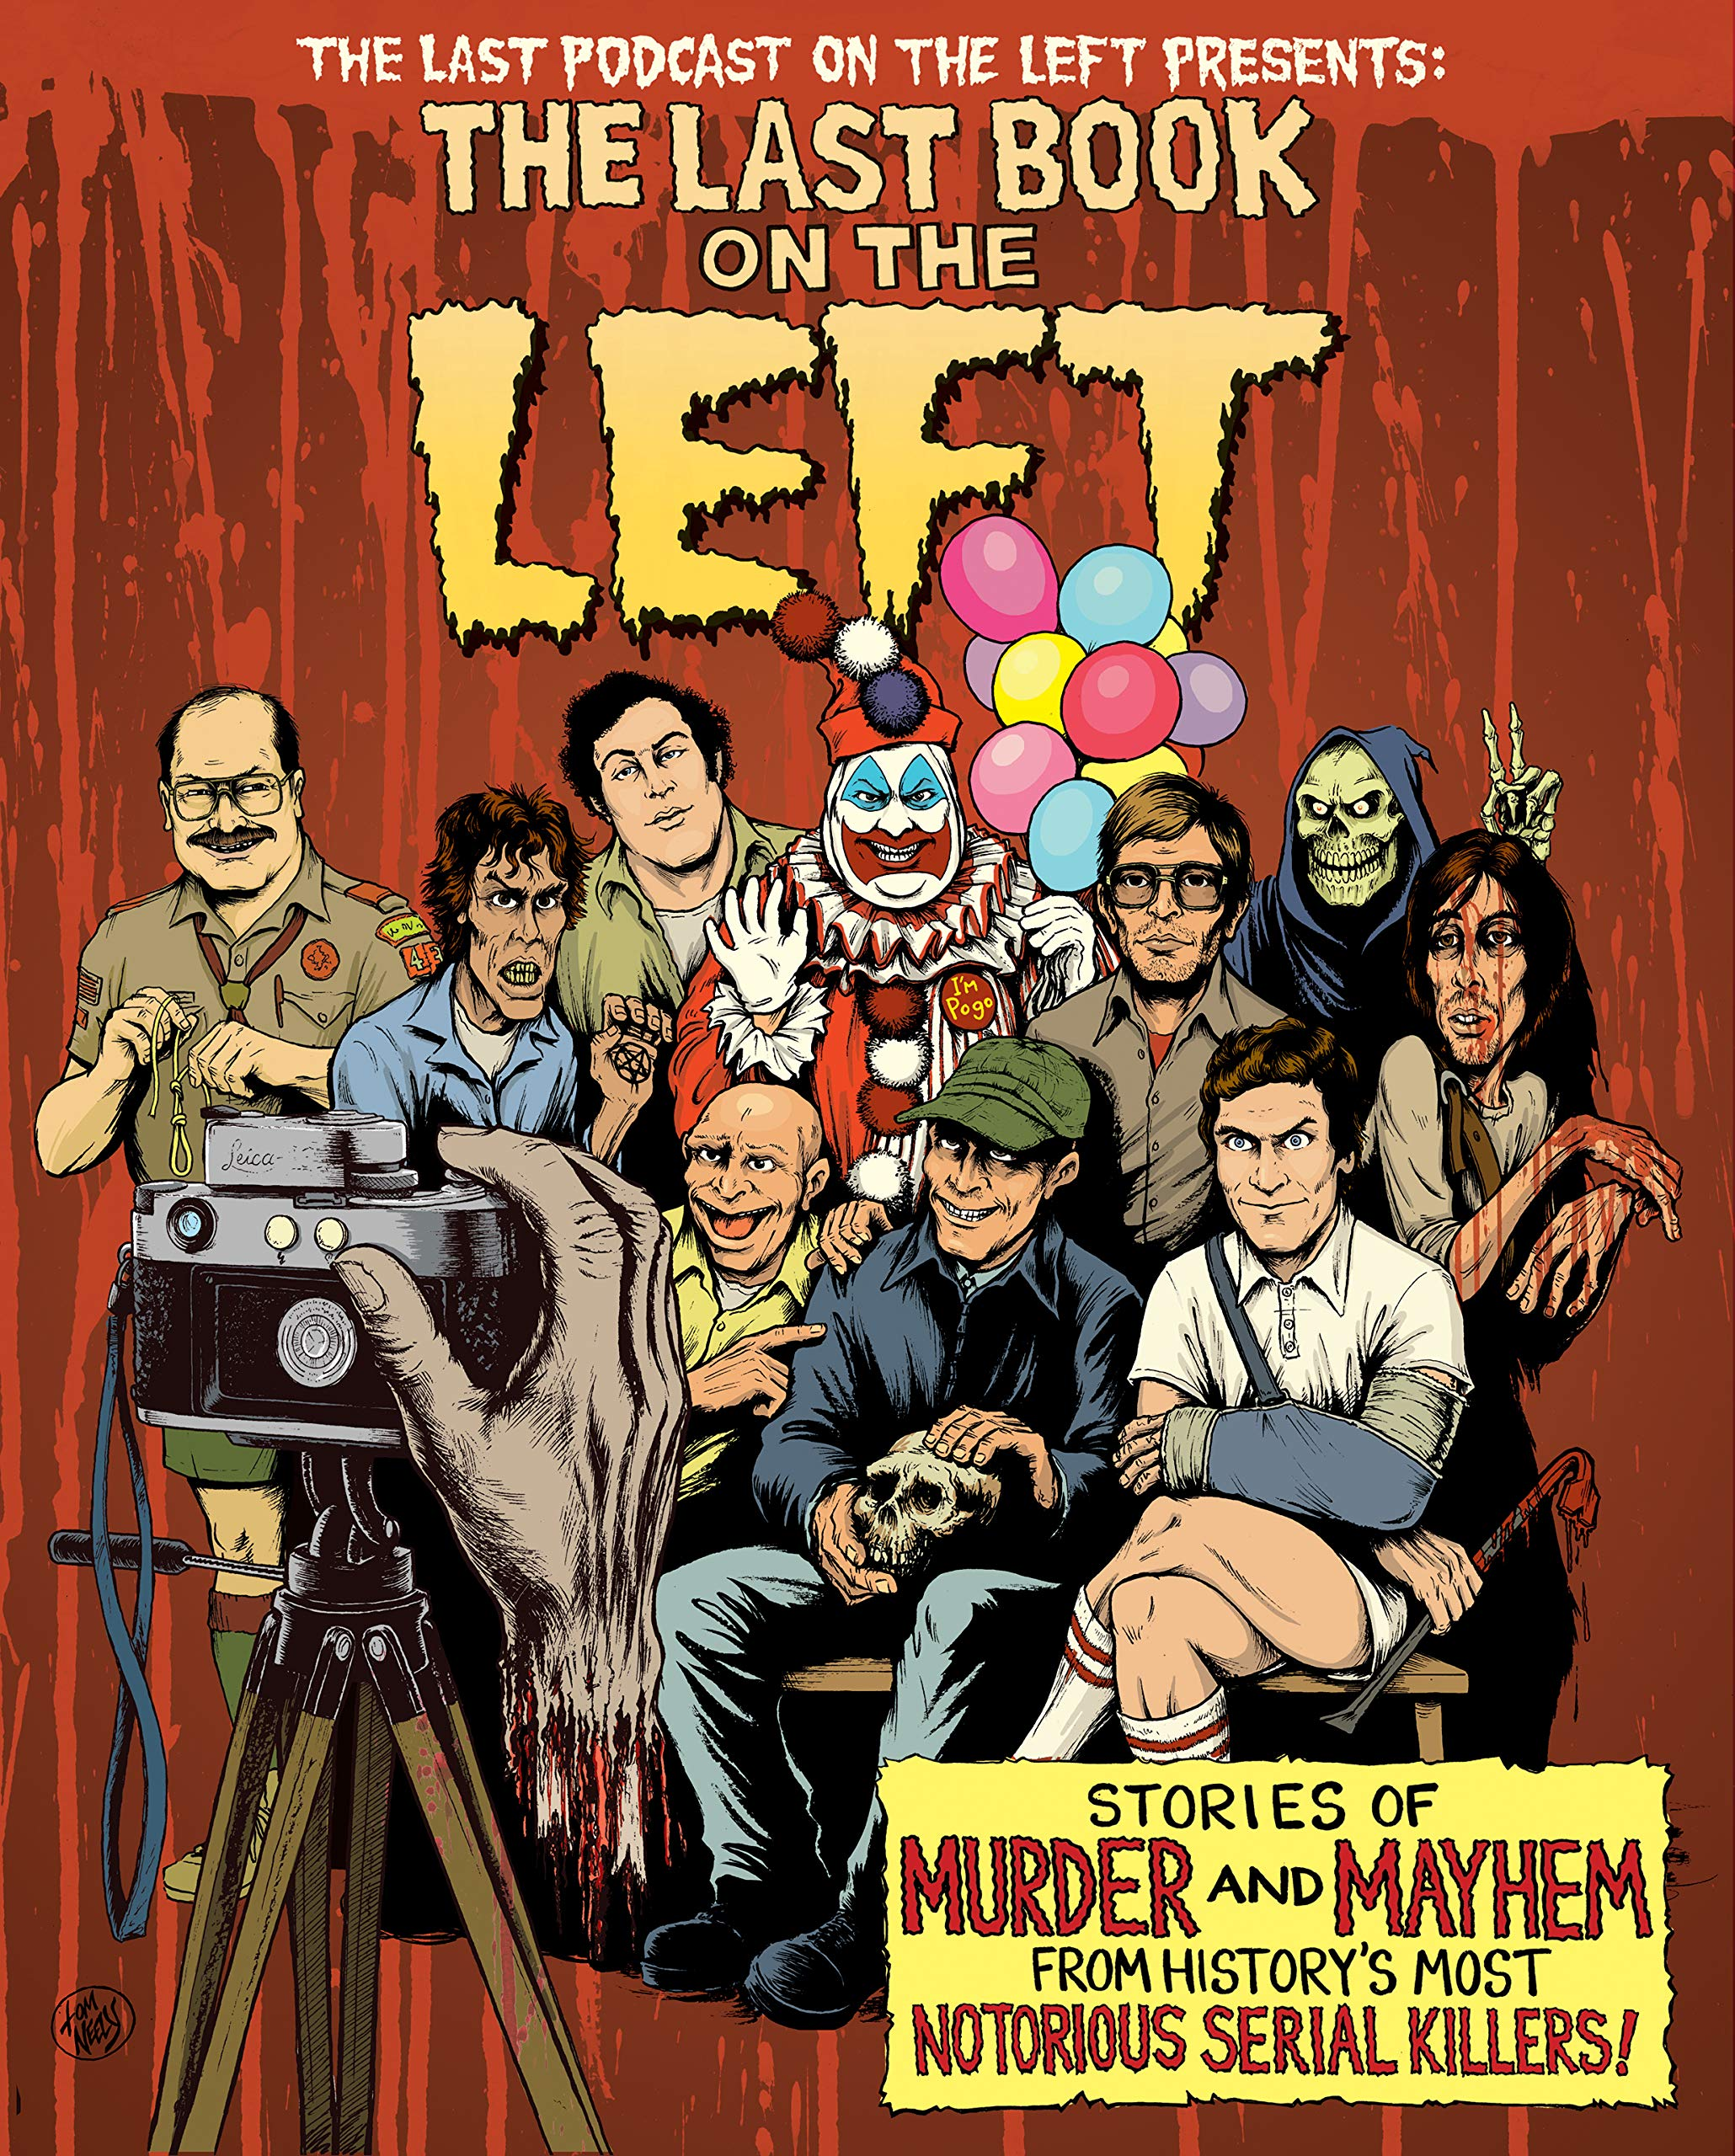 The Last Book On The Left Stories Of Murder And Mayhem From History S Most Notorious Serial Killers Kissel Ben Parks Marcus Zebrowski Henry Neely Tom 9781328566317 Amazon Com Books Marcus parks is an actor and writer, known for last podcast on the left: the last book on the left stories of